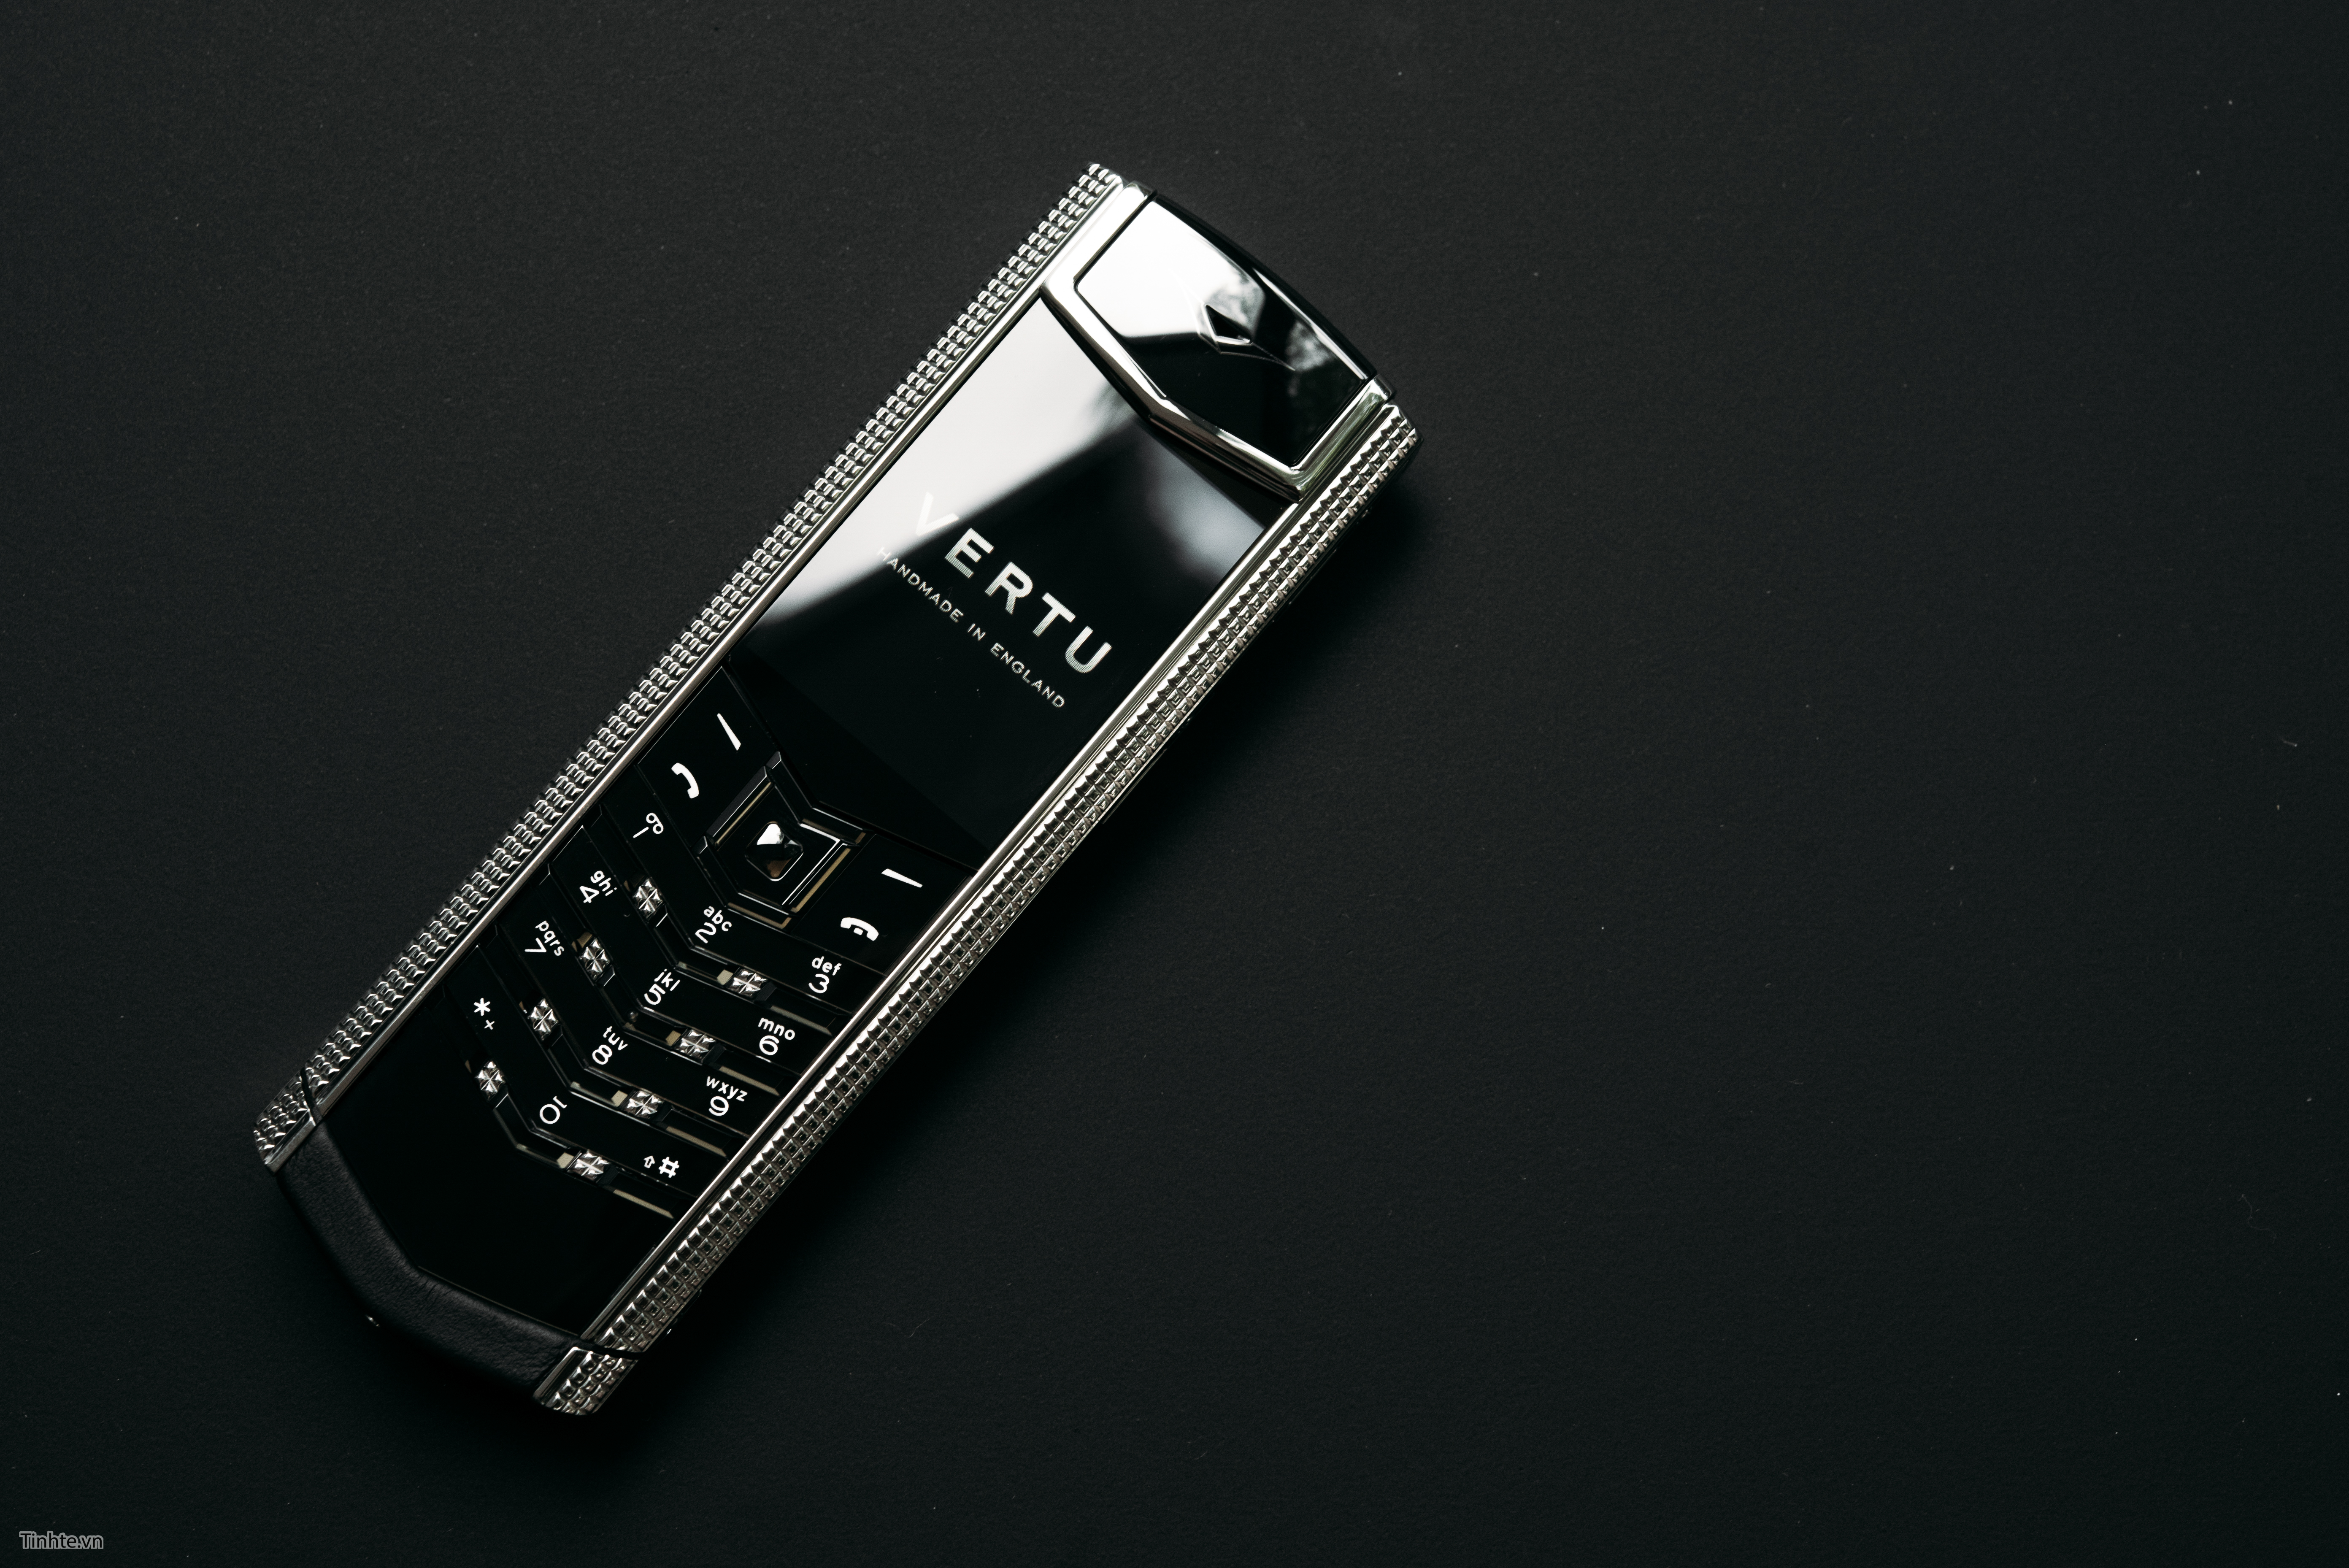 Vertu: Rise and Fall of the Ultimate Luxury Mobile Phone | 3716x5567